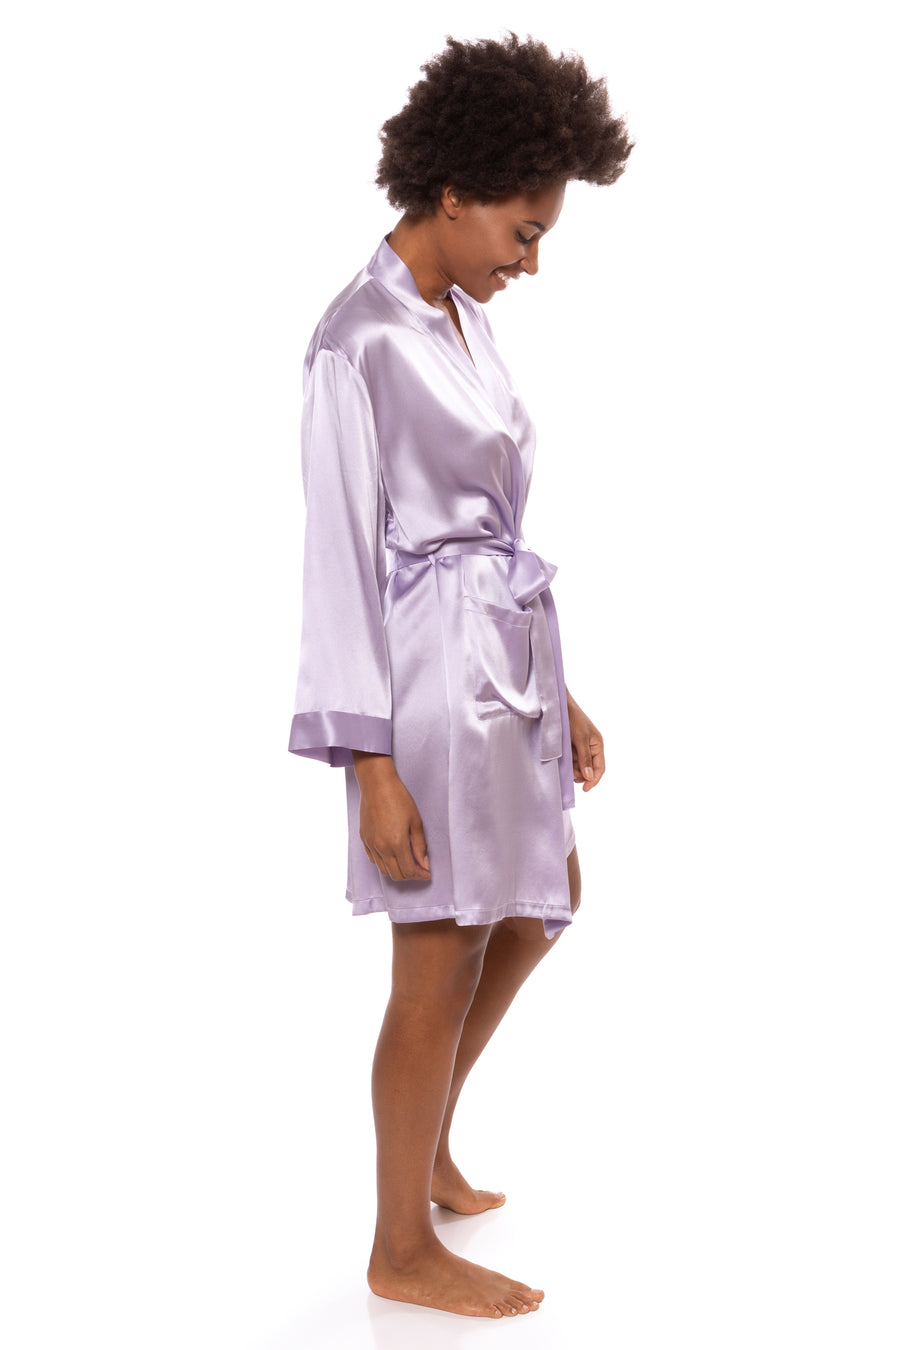 Midnight Jewel - Women's Silk Short Robe - TexereSilk